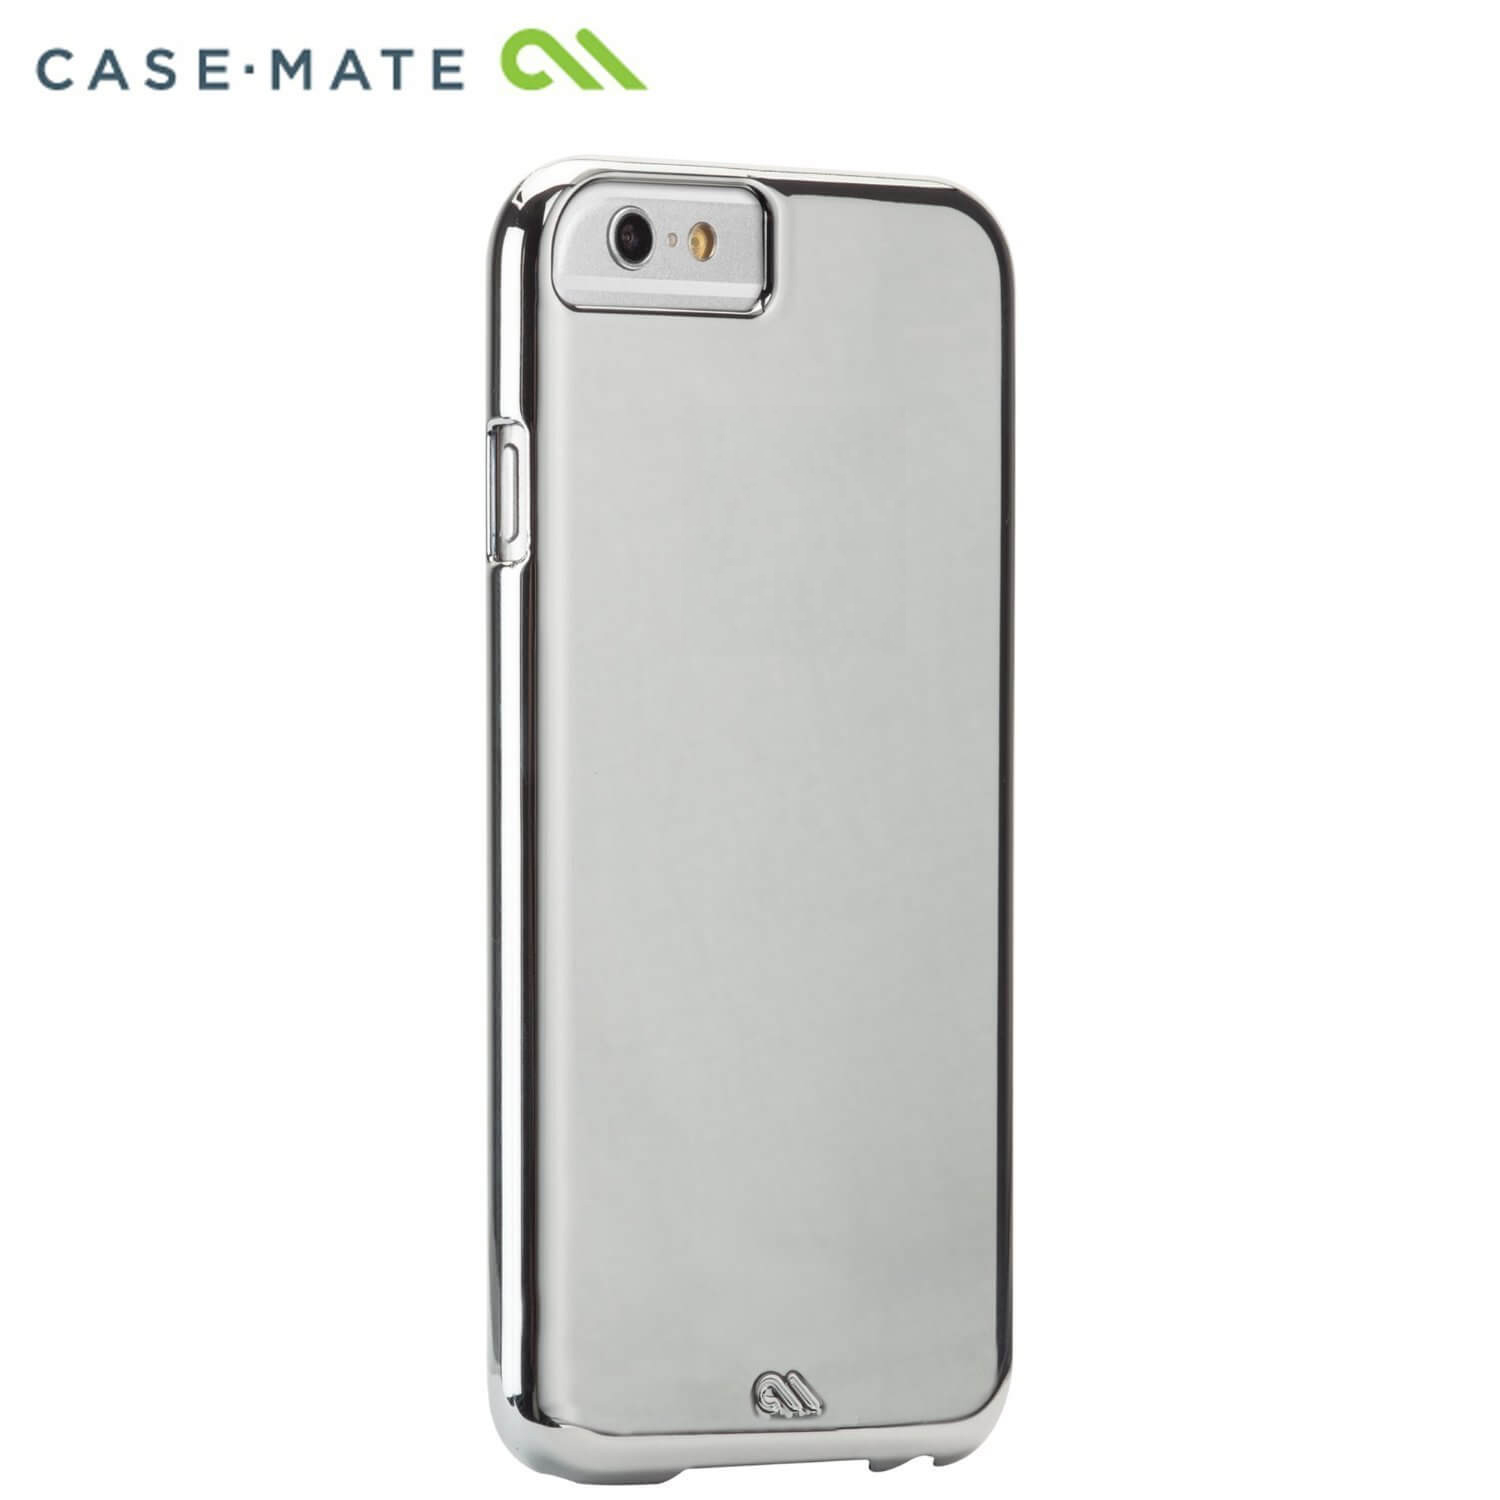 CaseMate Barely There NH - поликарбонатов кейс за iPhone 6, iPhone 6S, iPhone 8, iPhone 7 (сребрист)